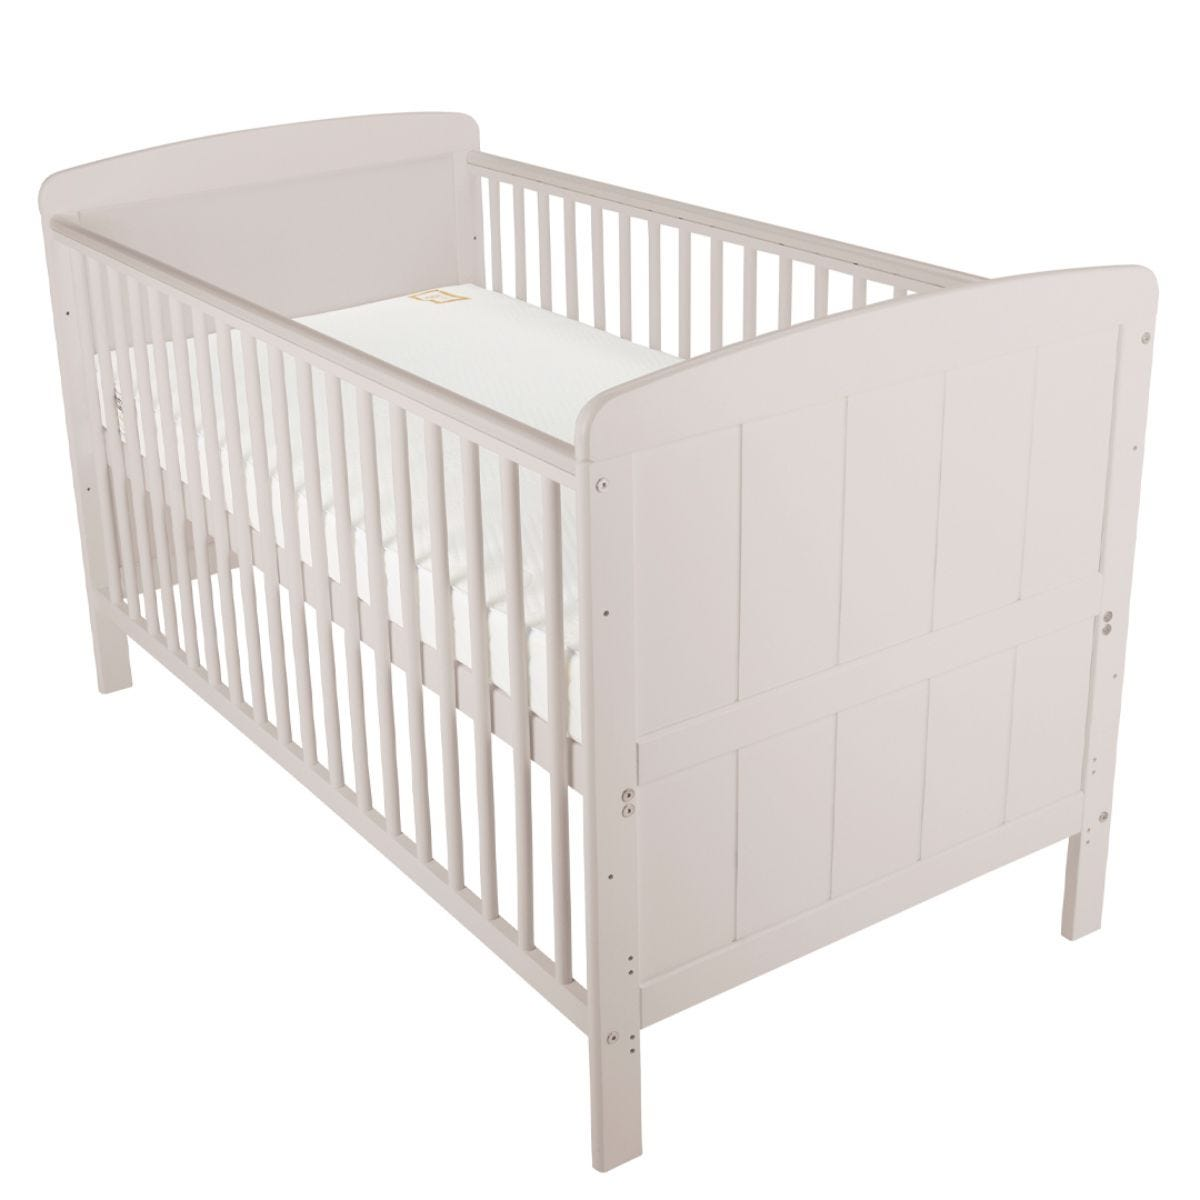 CuddleCo Juliet Cot Bed with Mother & Baby Rose Gold Spung Mattress Dove Grey